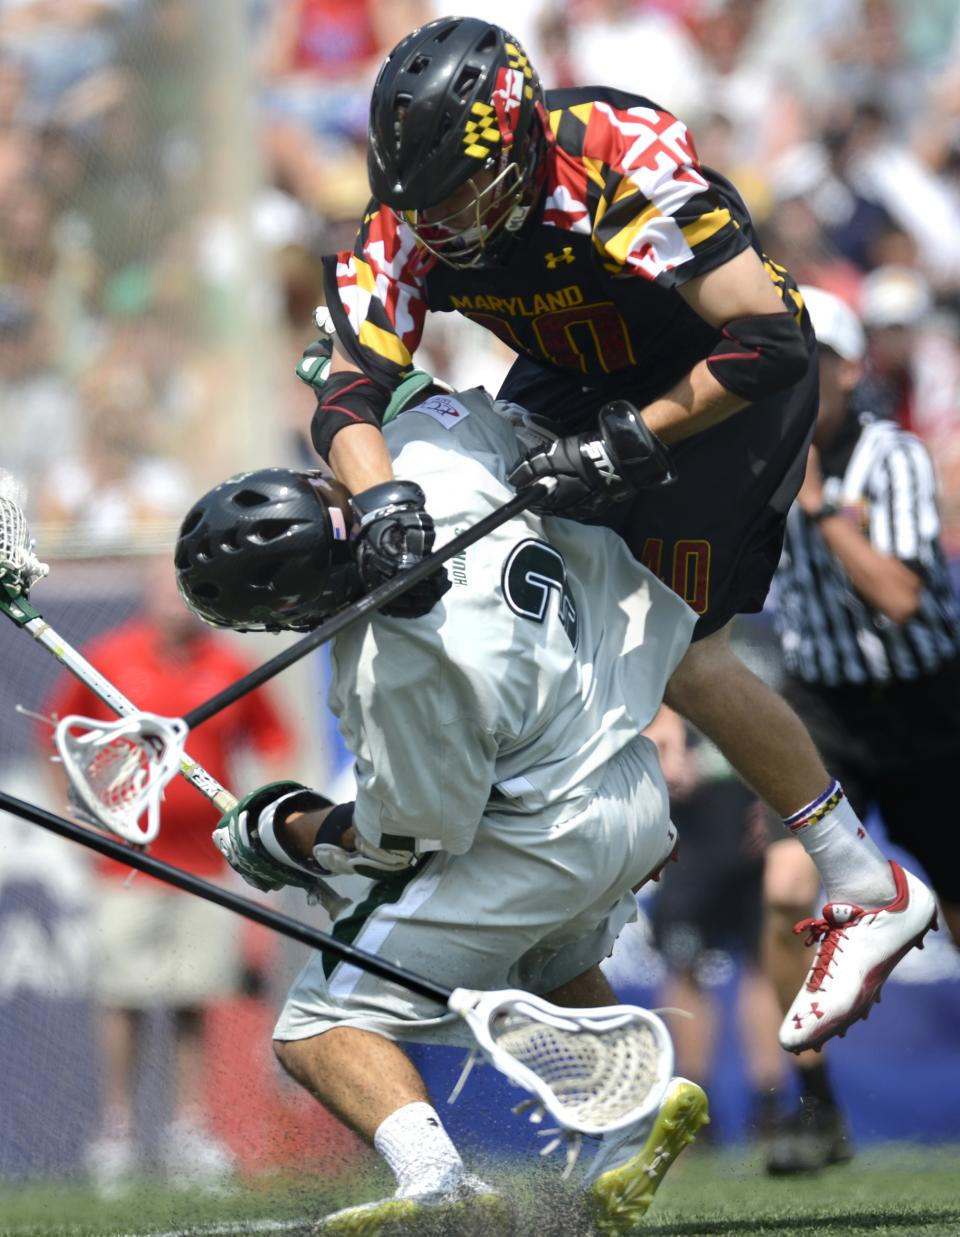 Maryland's Brian Cooper comes crashing down on Loyola's Chris Layne during the fourth quarter of their Division I NCAA men's lacrosse championship game at Gillette Stadium in Foxborough, Mass., Monday, May 28, 2012. Loyola won 9-3. (AP Photo/Gretchen Ertl)